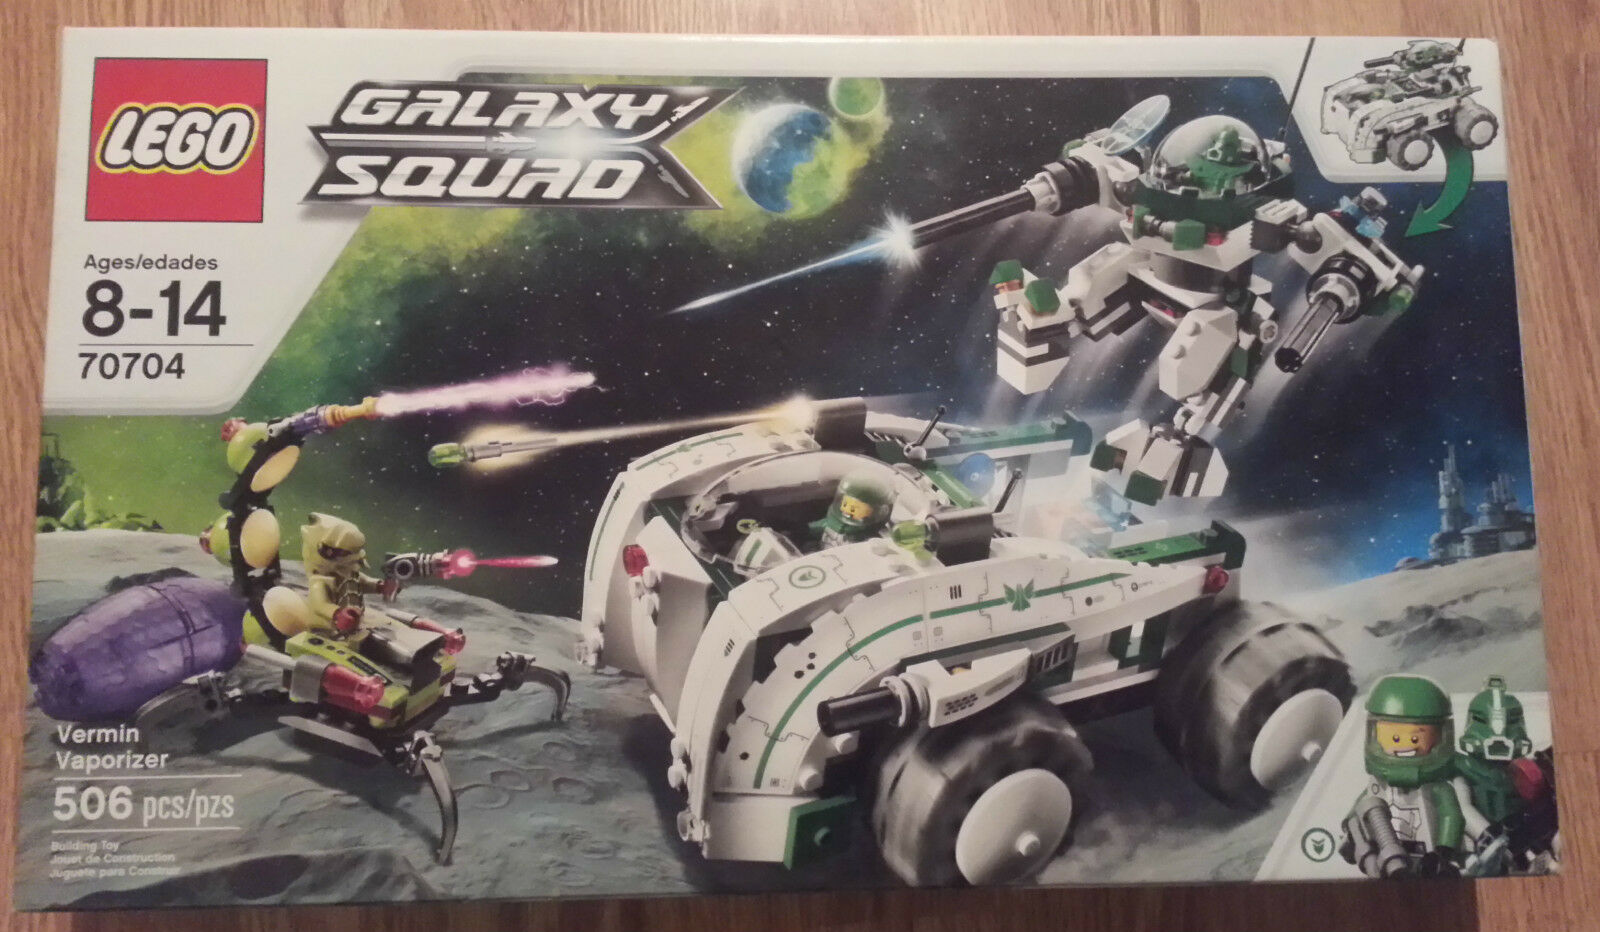 Lego Galaxy Squad Vermin Vaporizer set Sealed 506 Piece - Retired